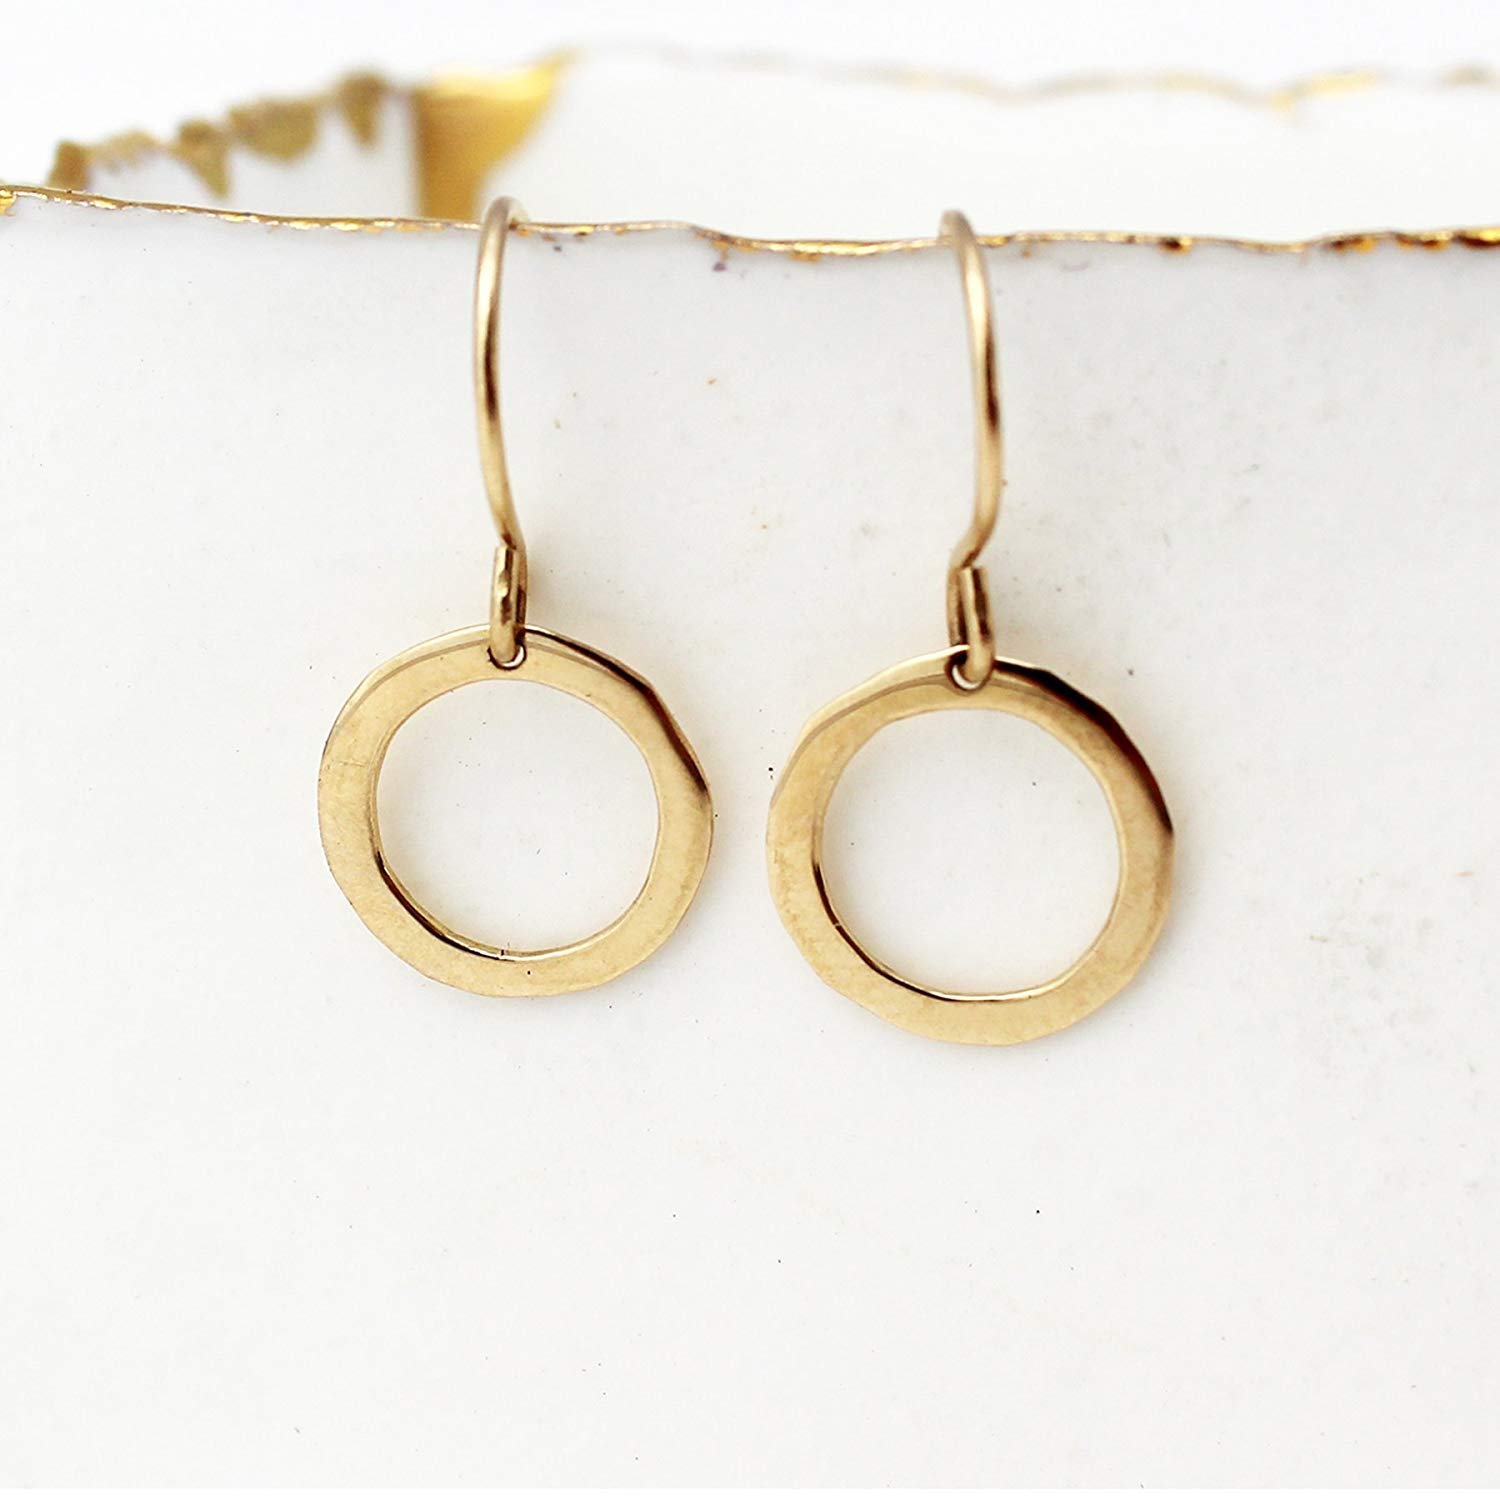 f57eace3332fe5 Get Quotations · 14k Solid Gold Hoop Earrings. Small Solid Gold Hoops in 14k  Yellow, Rose or